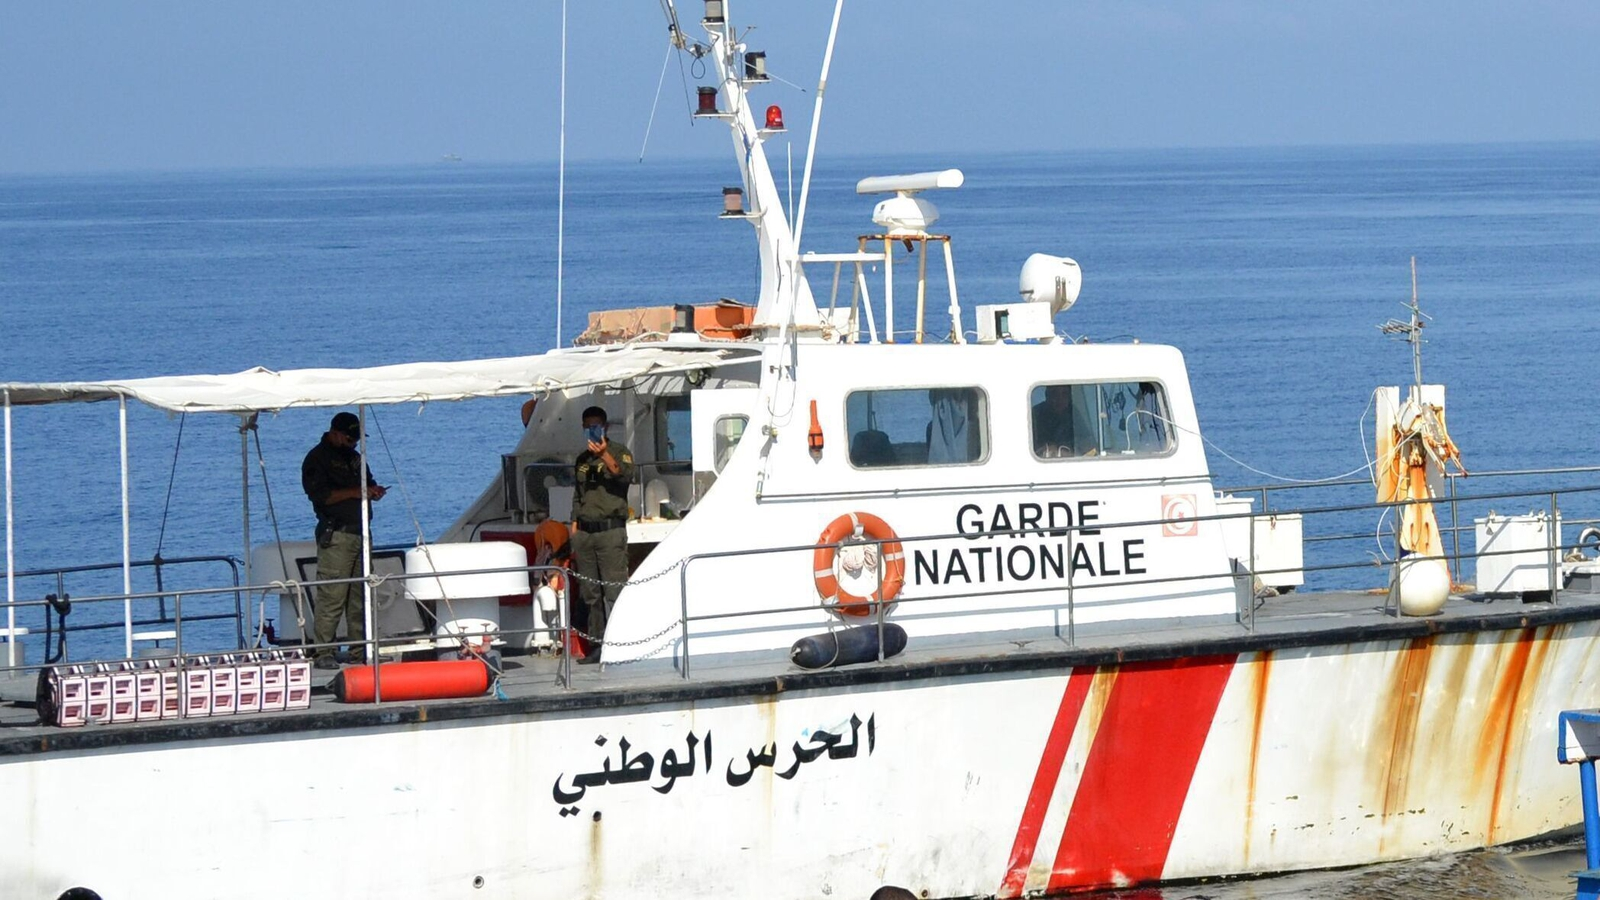 At least 40 migrants drown in shipwreck off Tunisia